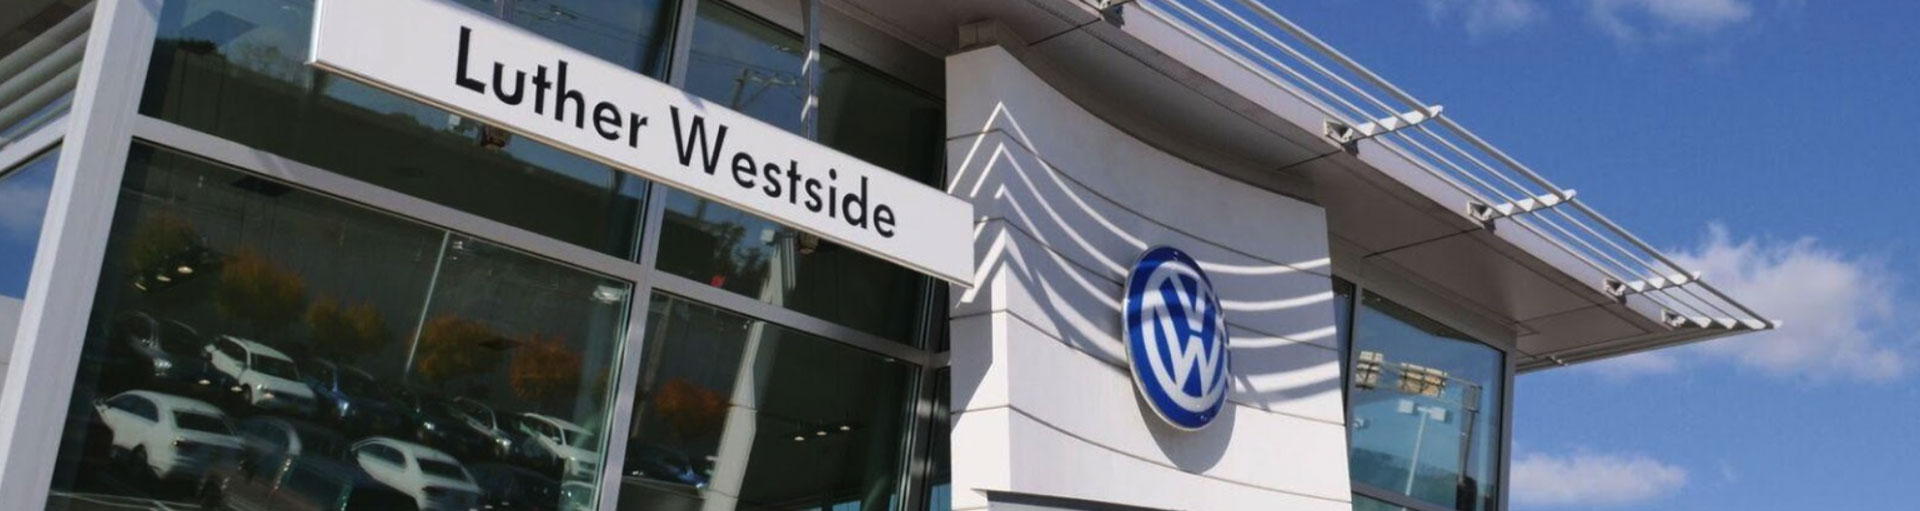 Luther Westside Volkswagen Service Specials